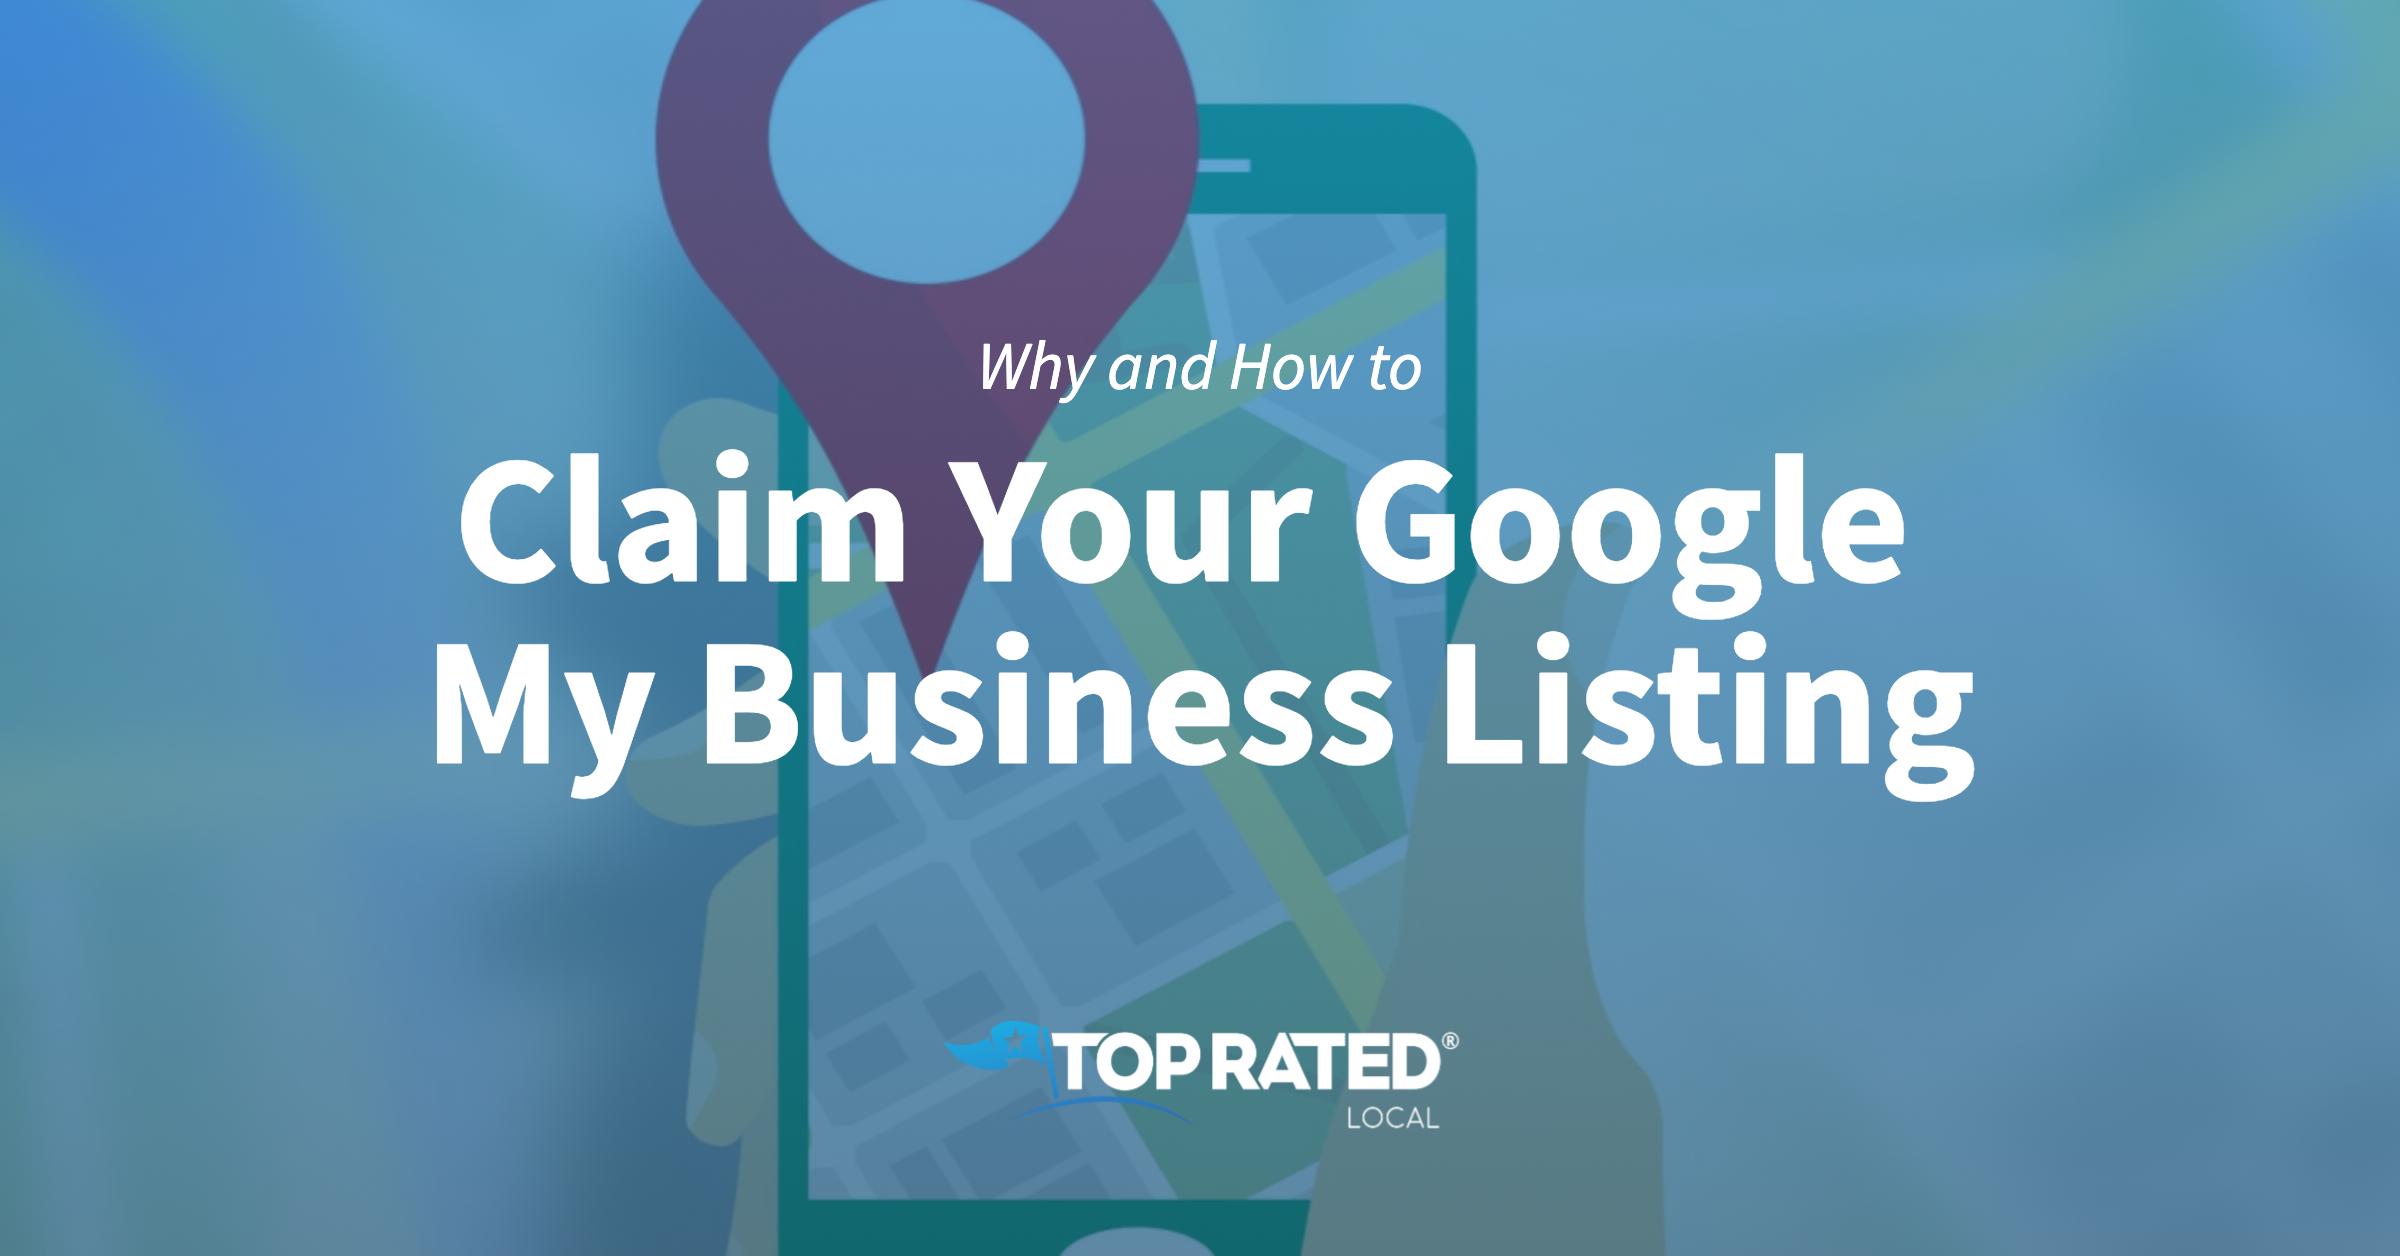 Why and How to Claim Your Google My Business Listing